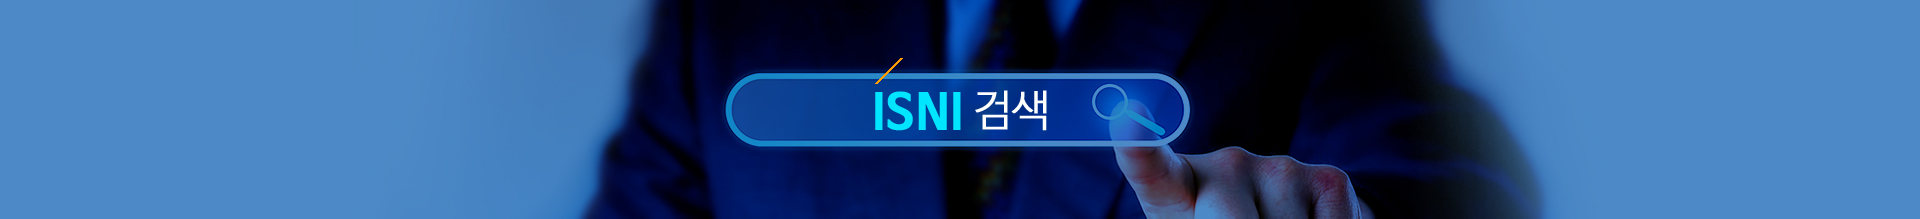 SEARCH ISNI